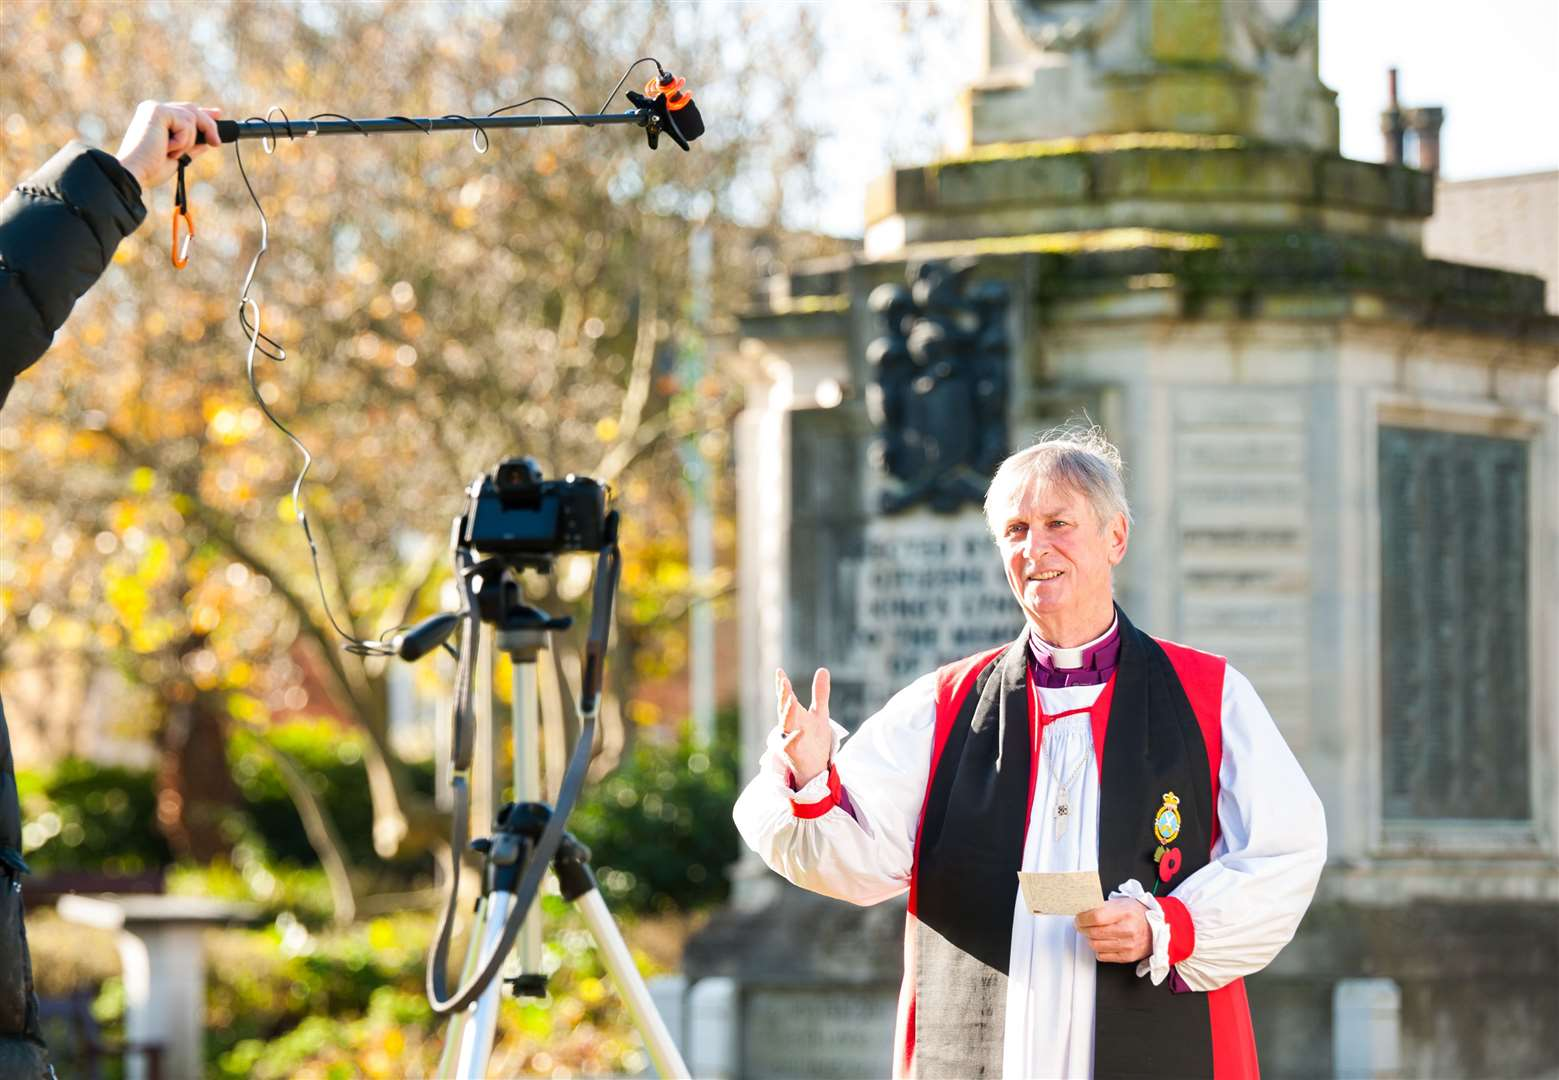 The Bishop of Lynn pre-recorded his Remembrance Sunday sermon at the Tower Gardens in King's Lynn this year. Picture: Ian Burt